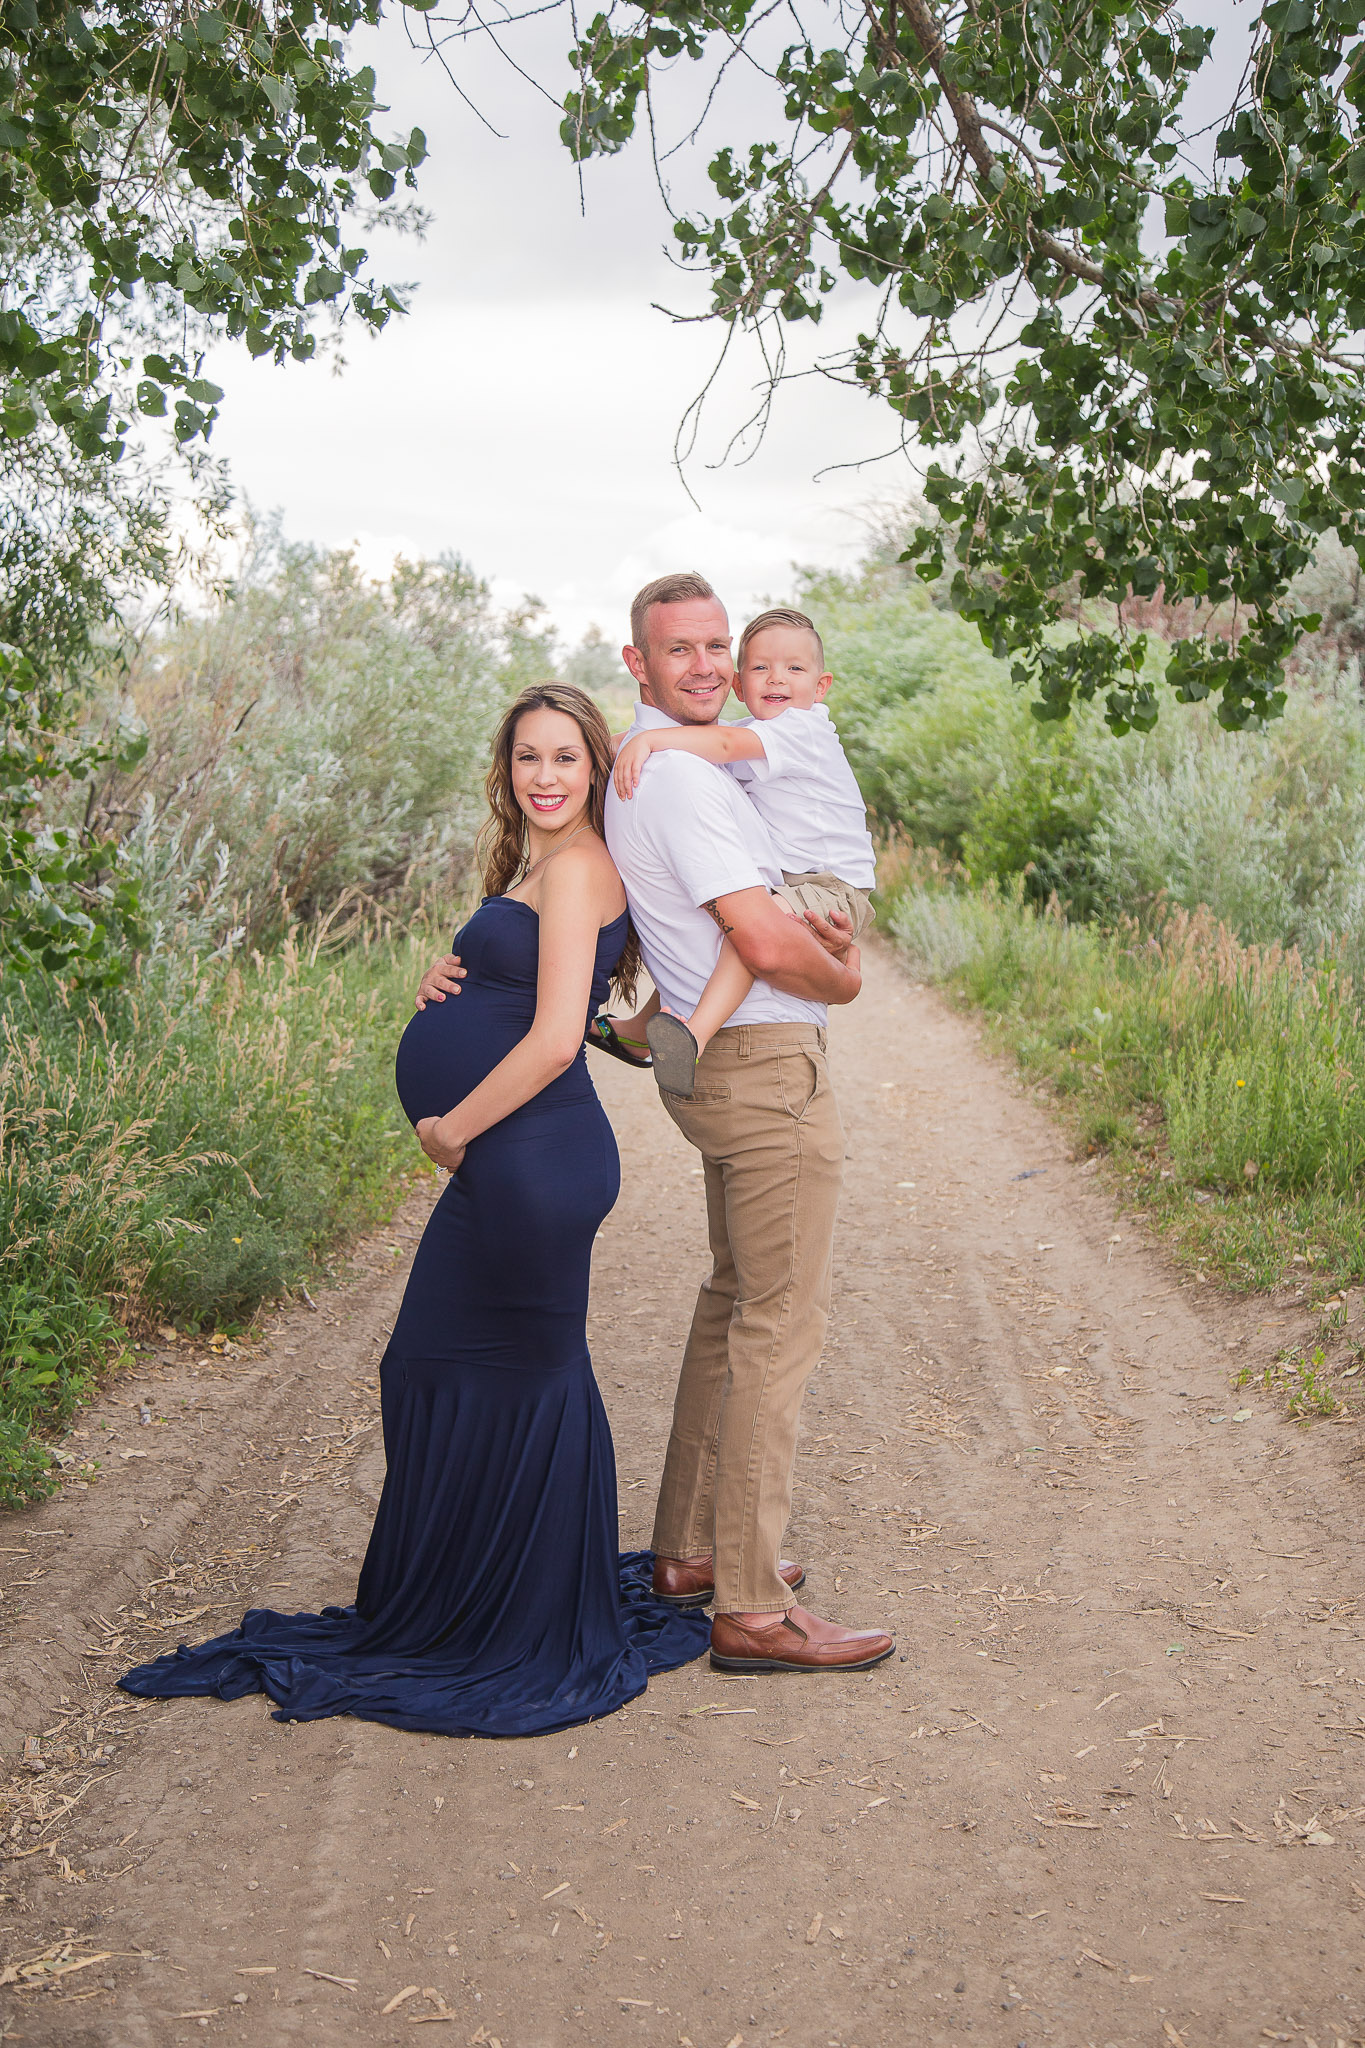 Maternity-Family-with-Toddler-Outside-Gown.jpg